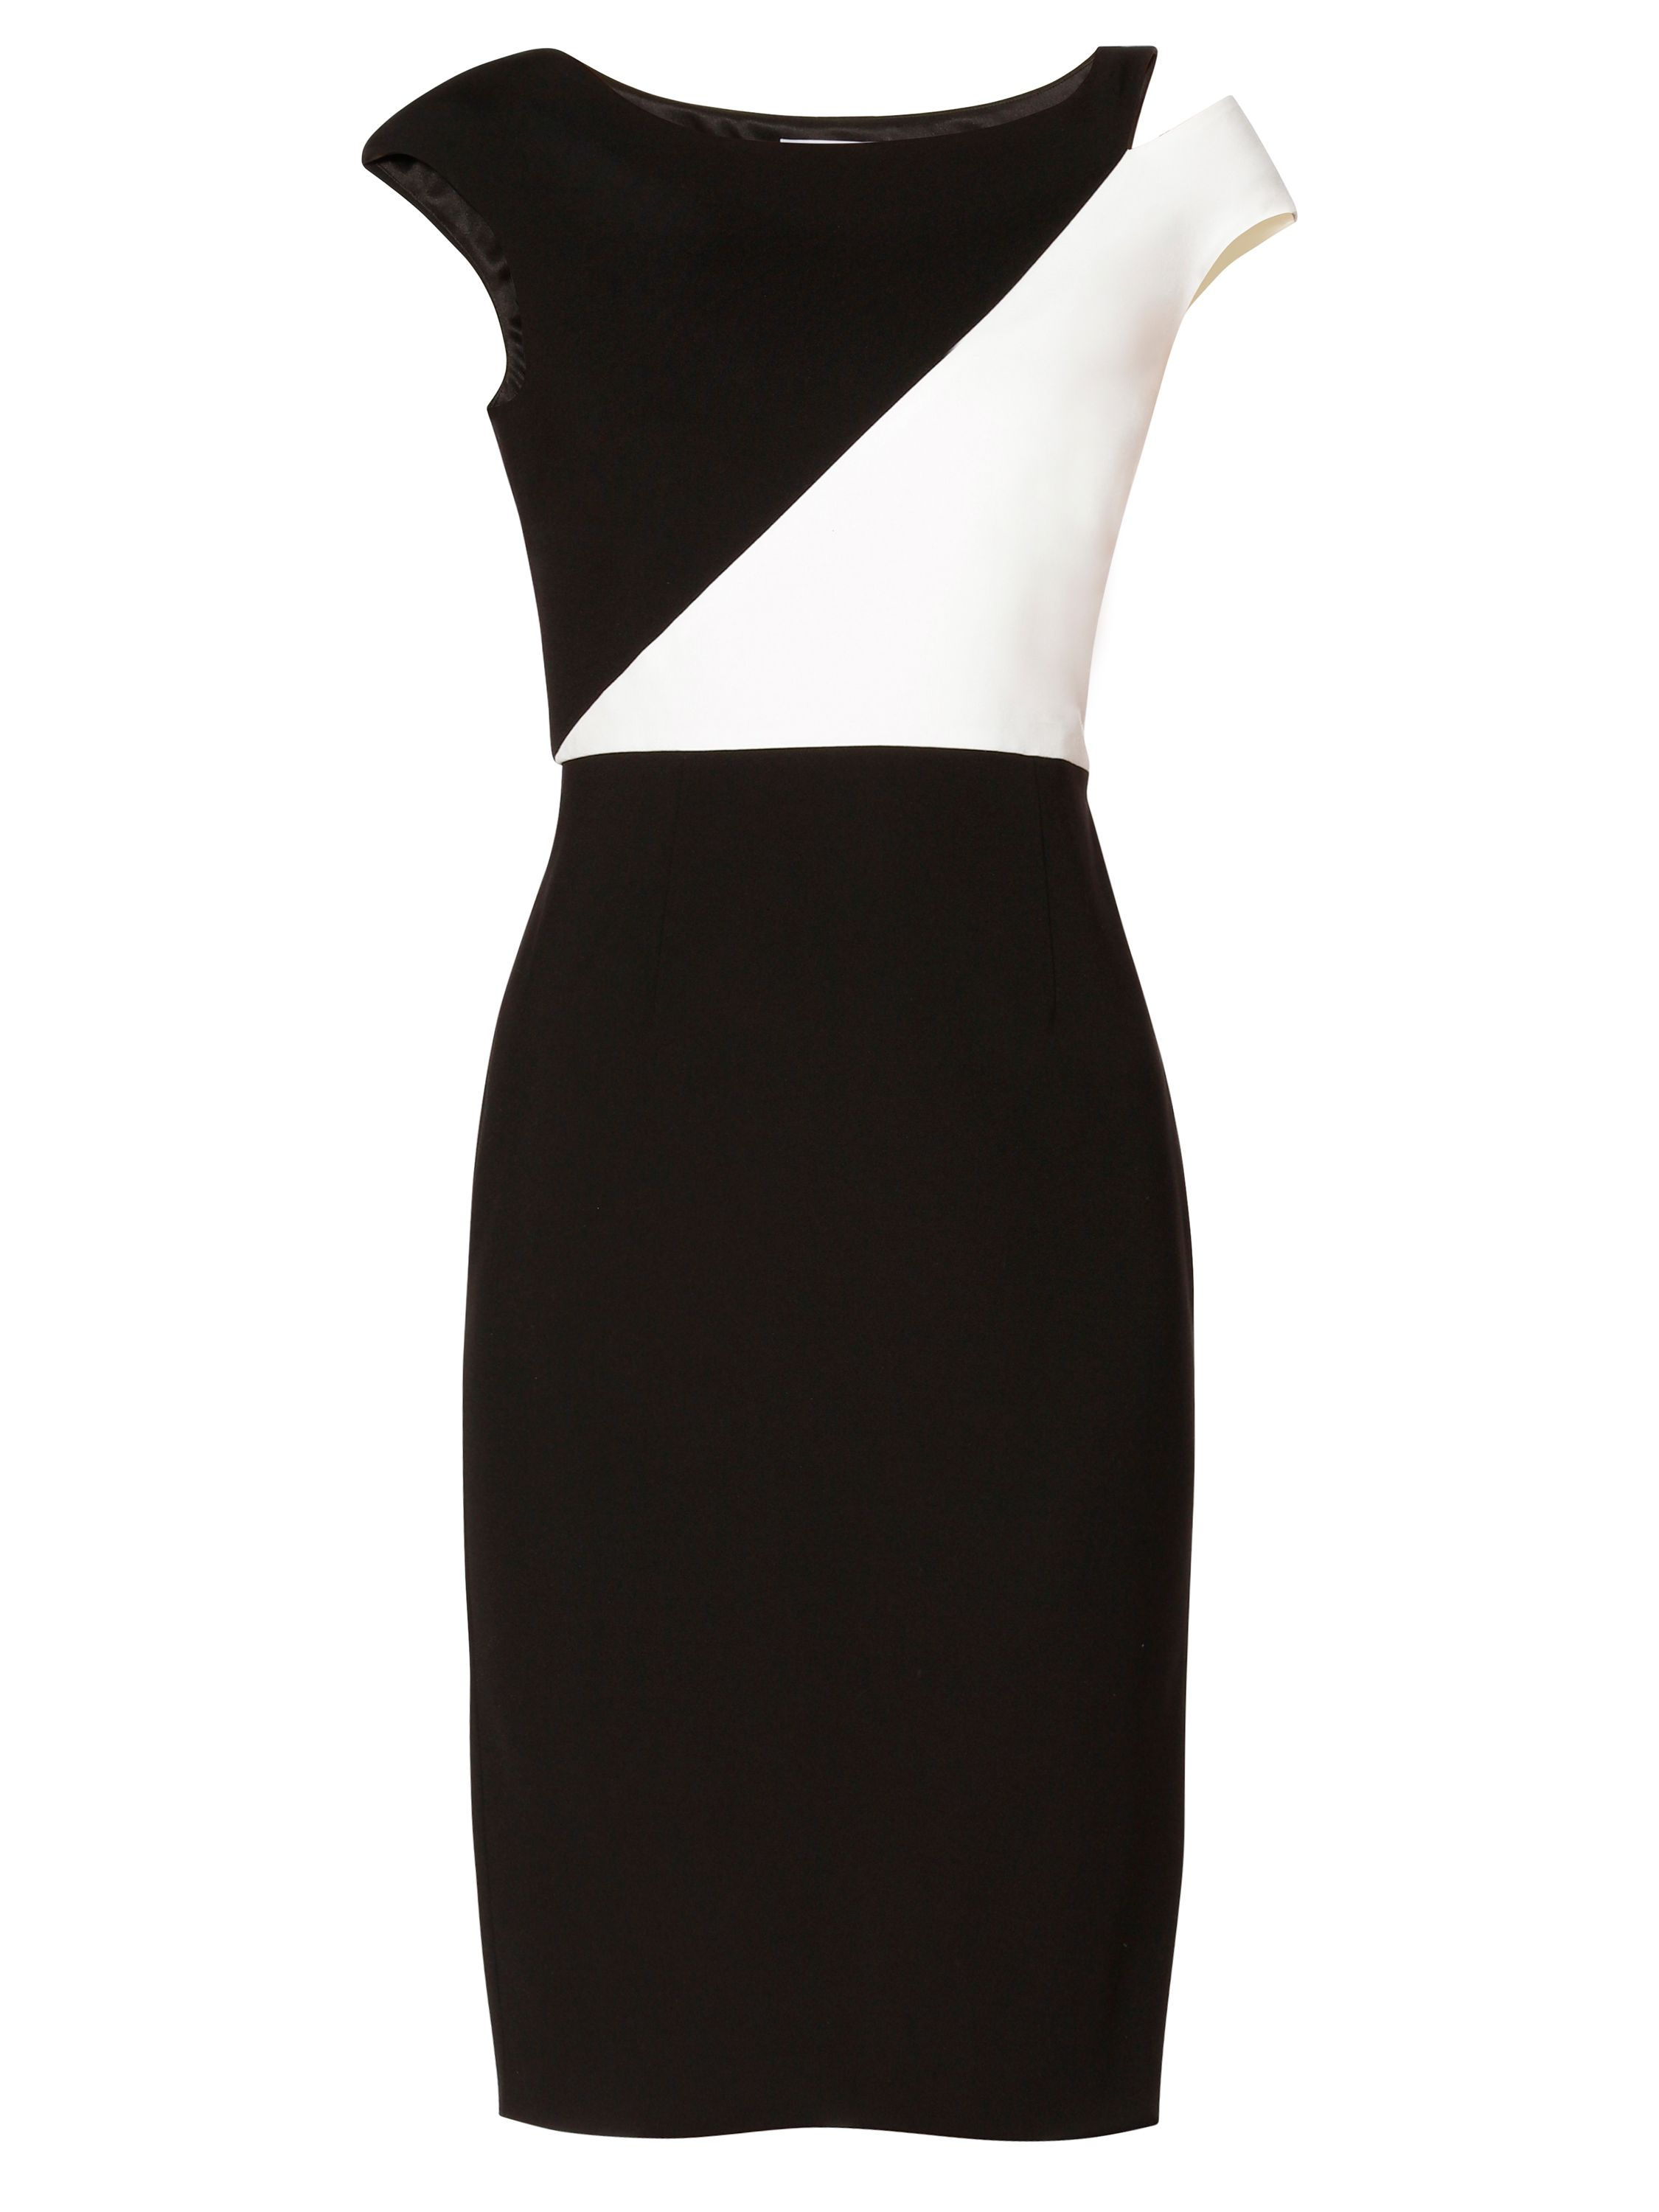 Gina Bacconi Zoe Contrast Panel Dress, Black